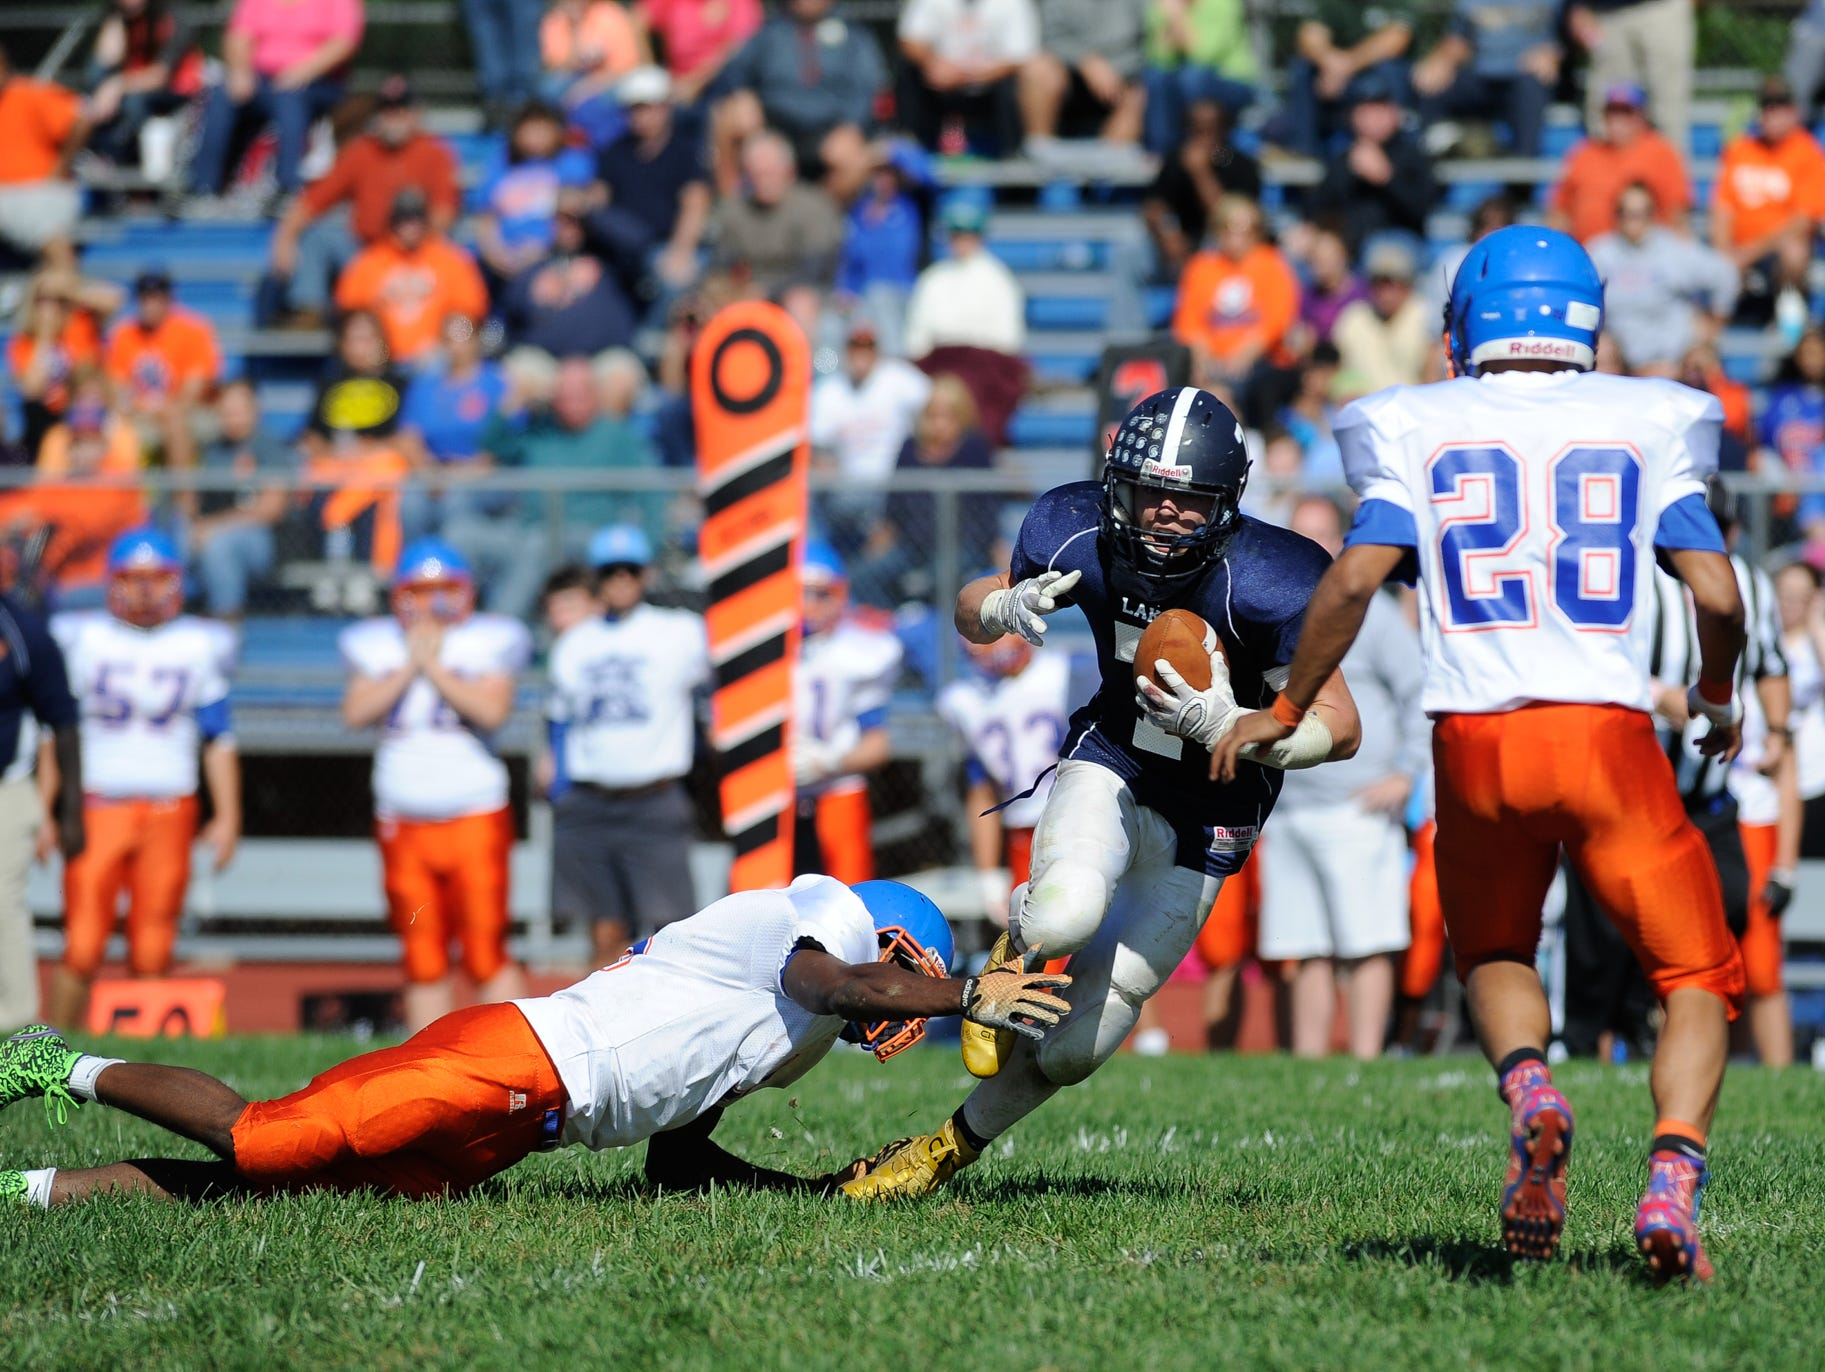 Lake Forest's #7 Ben Moore runs the ball down field in their 19-14 win over Delmar on Saturday at Lake Forest High School.